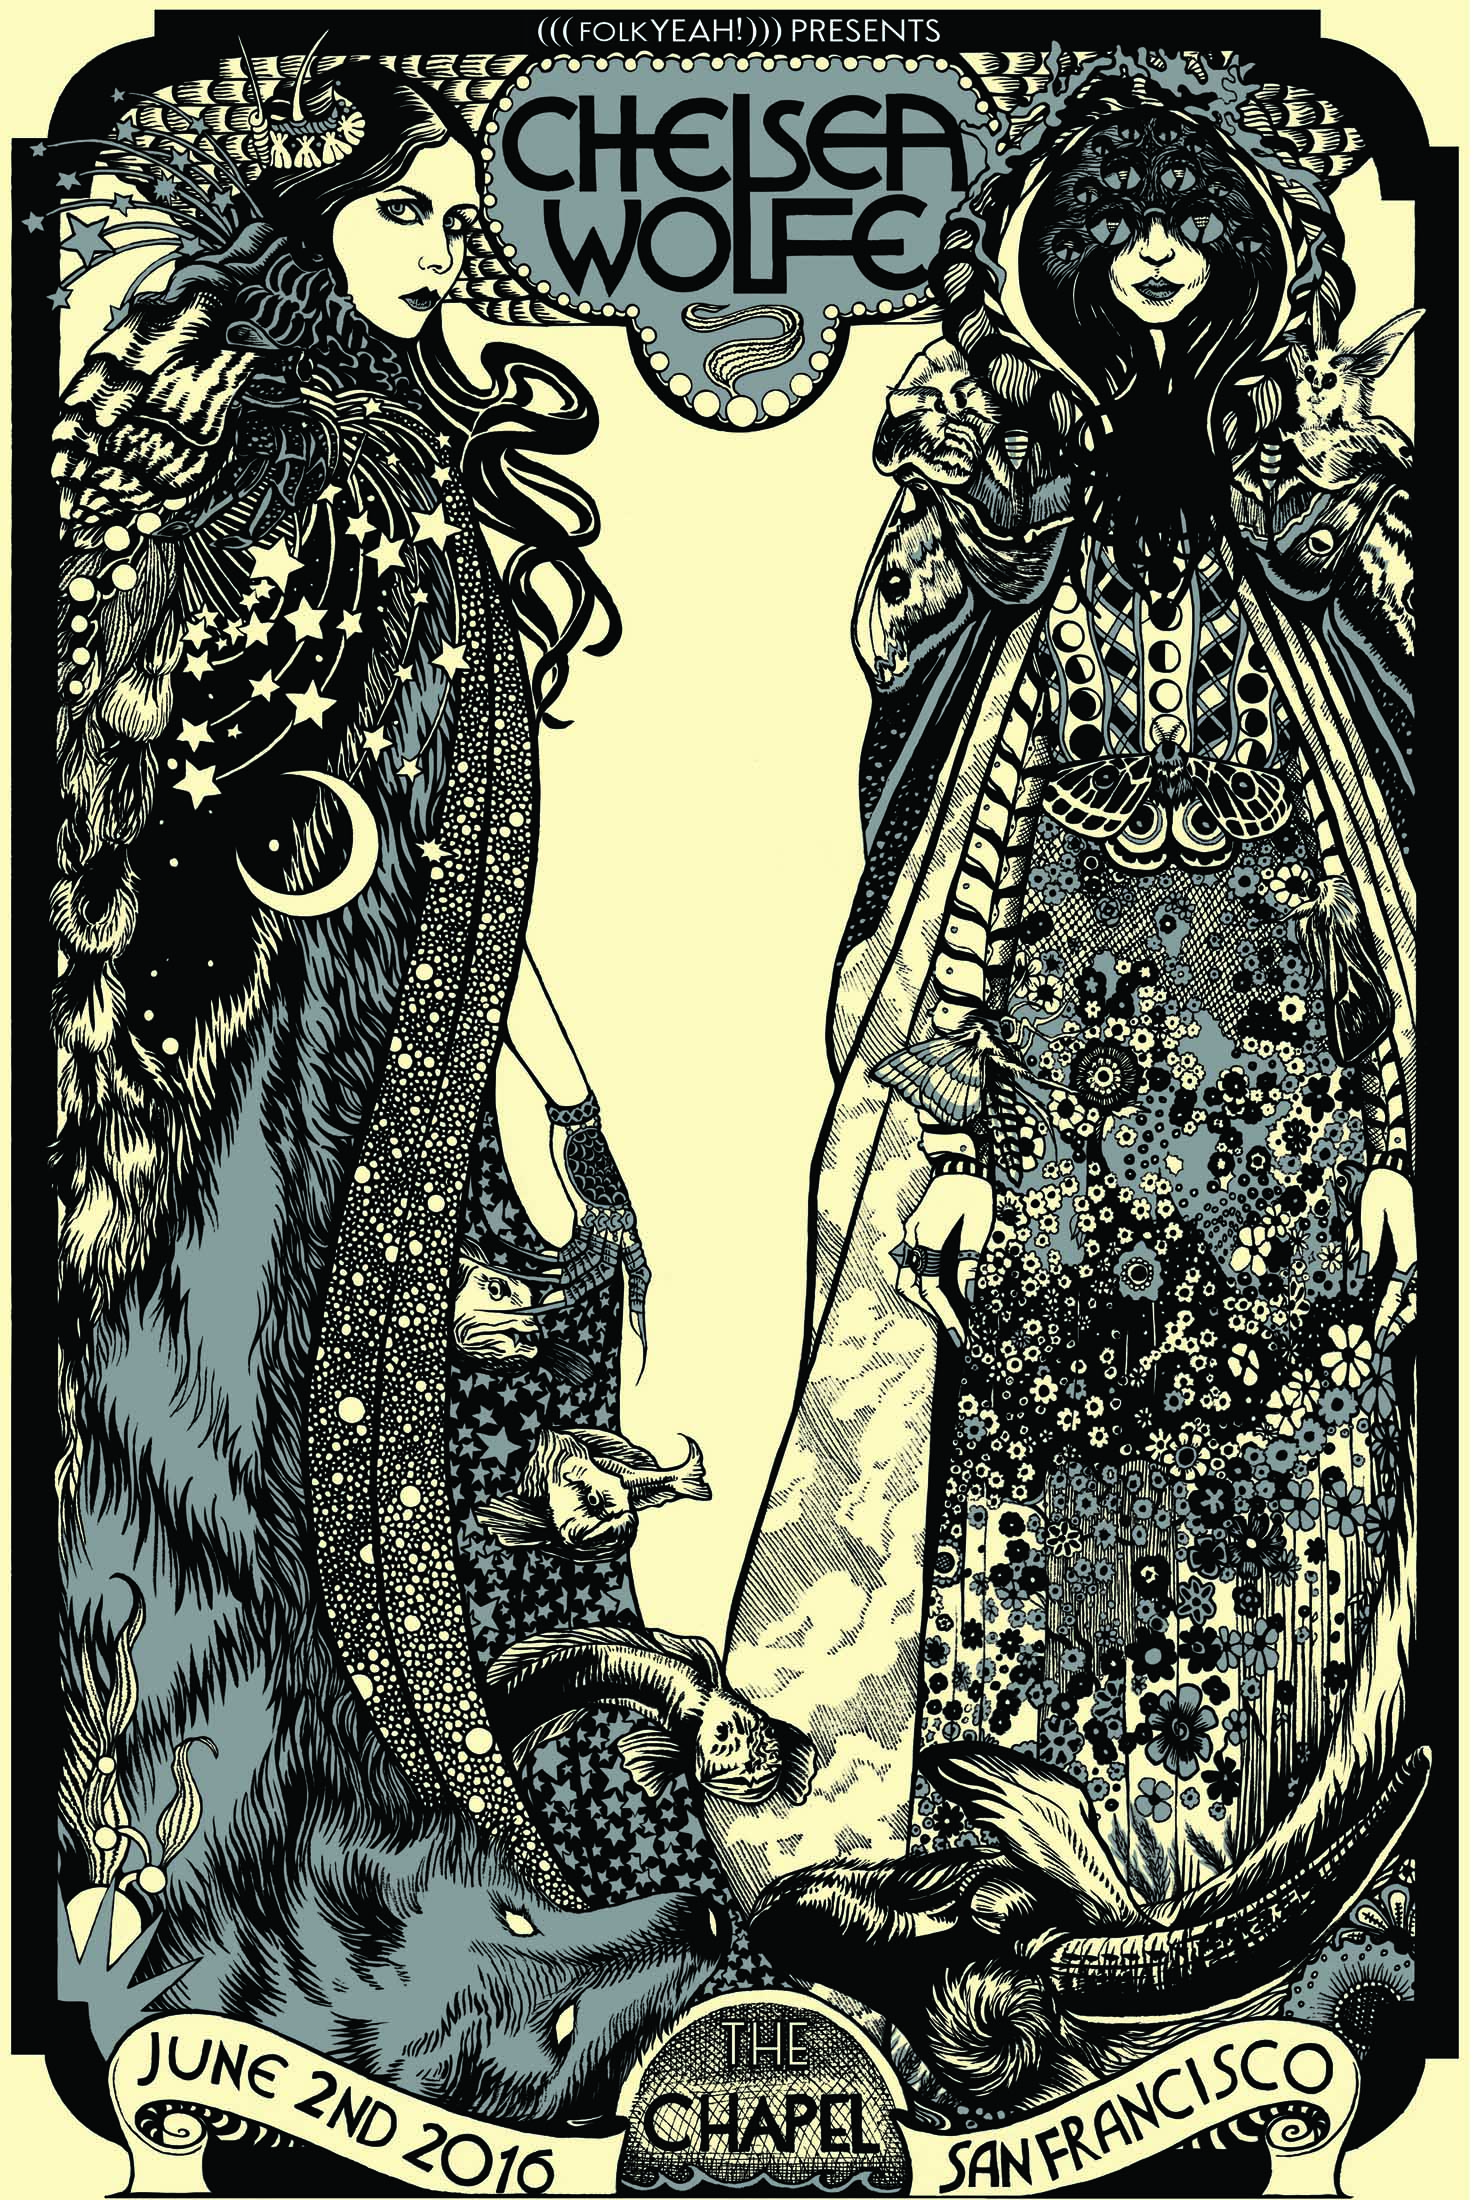 Chelsea Wolfe poster for the Chapel SF